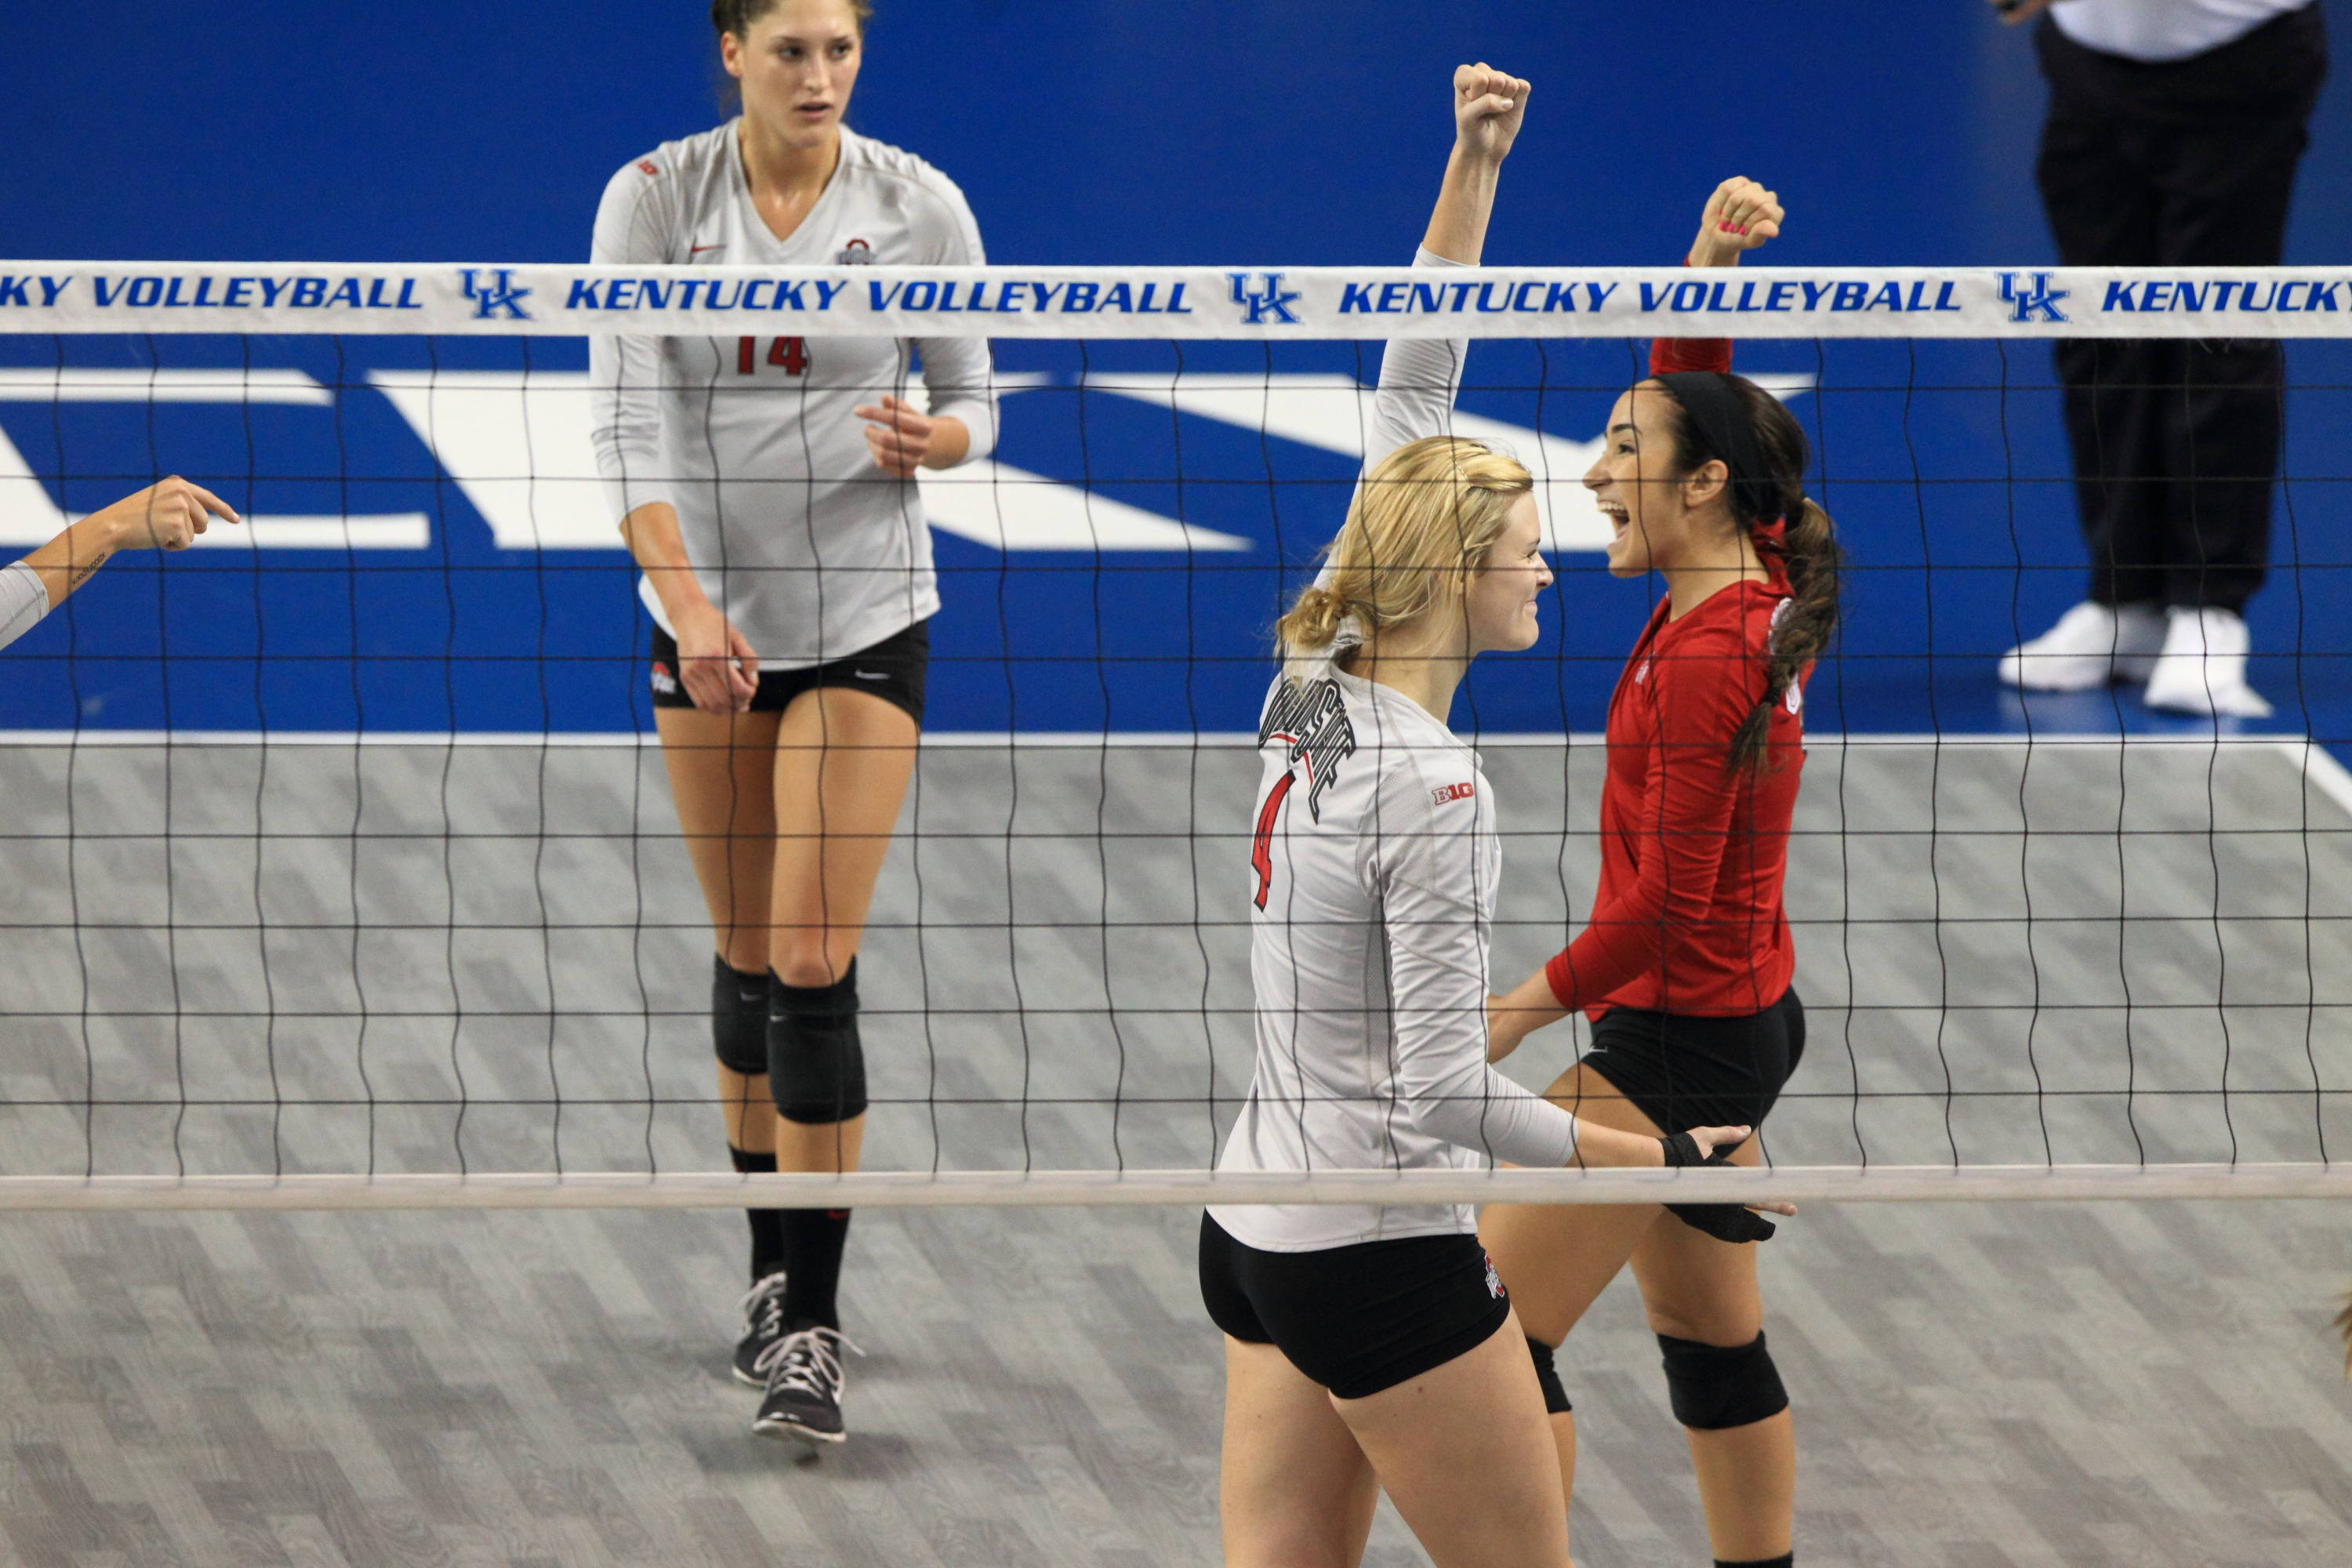 The Ohio State University moves onto the 2nd round of the 2014 NCAA Women's Volleyball Tournament. Lexington, KY. December 5, 2014